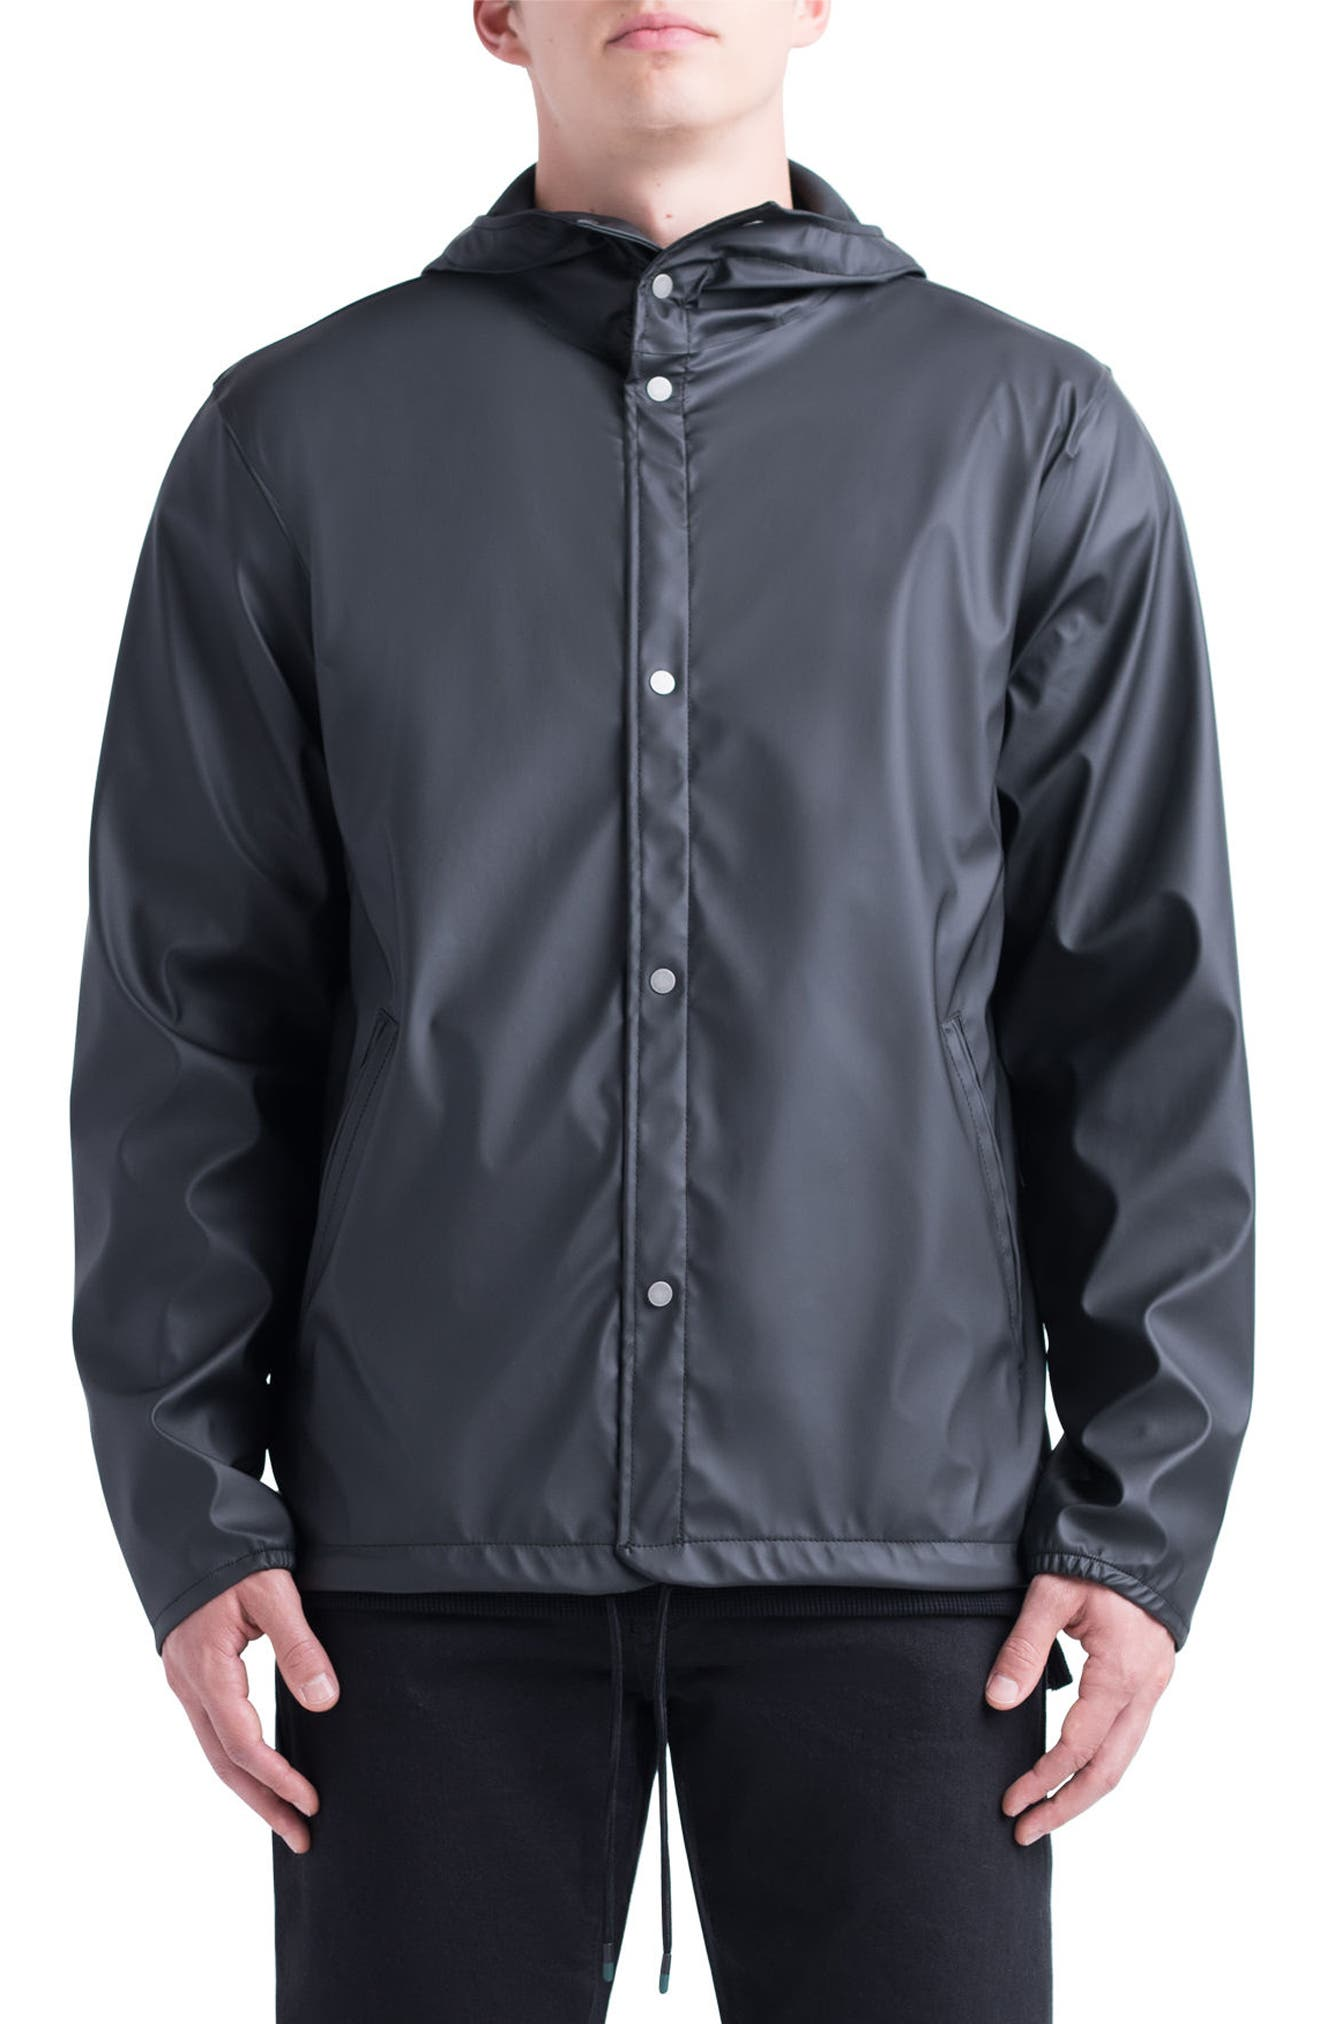 Forecast Hooded Coaches Jacket,                             Main thumbnail 1, color,                             002